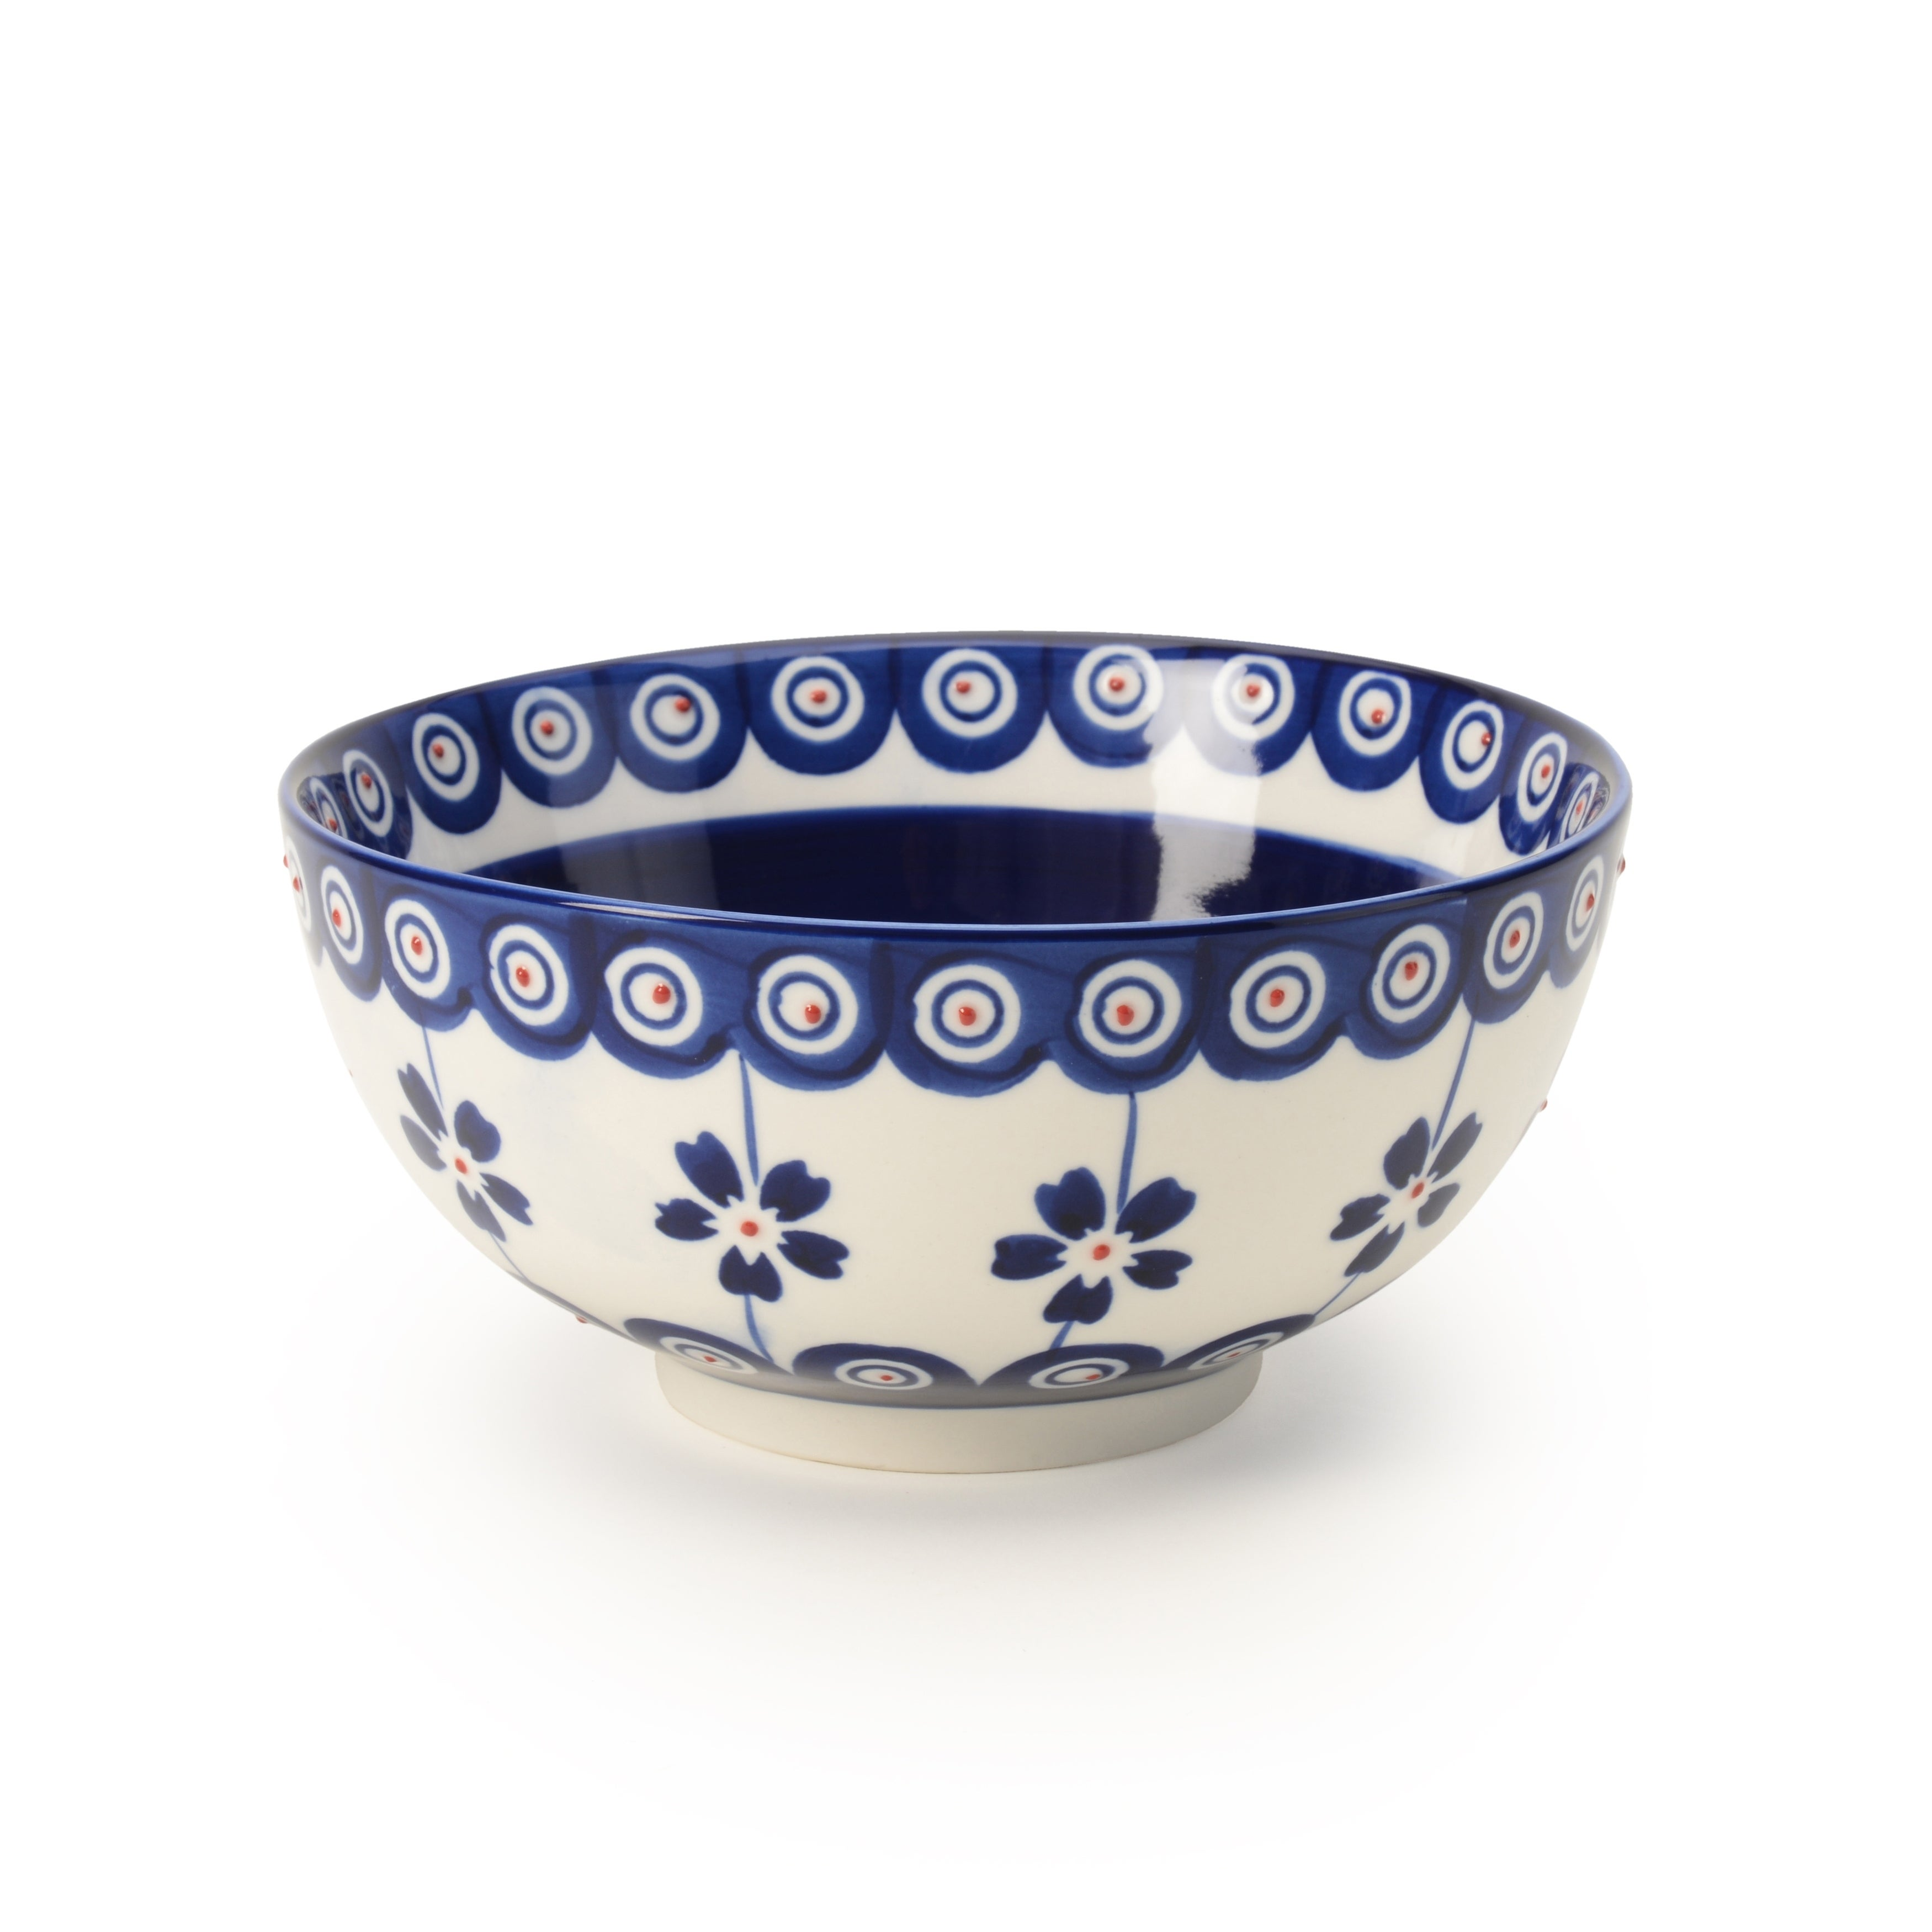 bowl ceramics and pottery red white blue